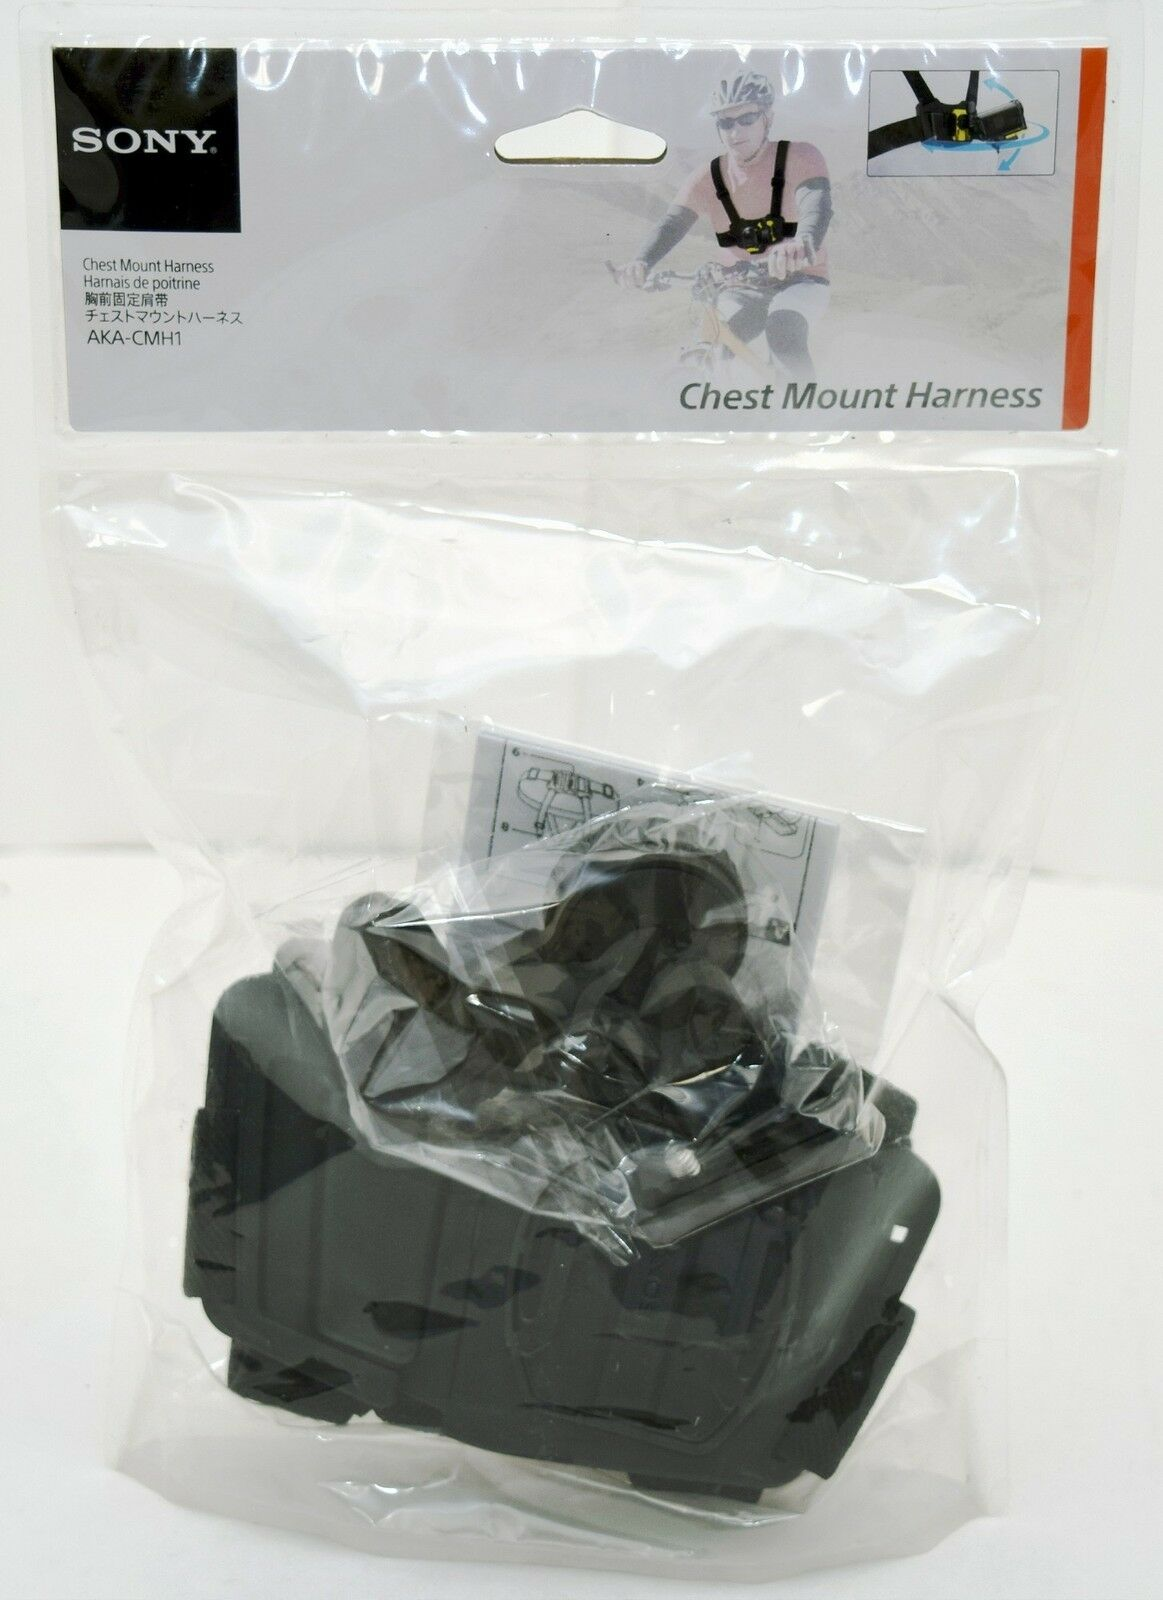 NEW GENUINE Sony AKA-CMH1 Chest Mount Harness for Action Cam